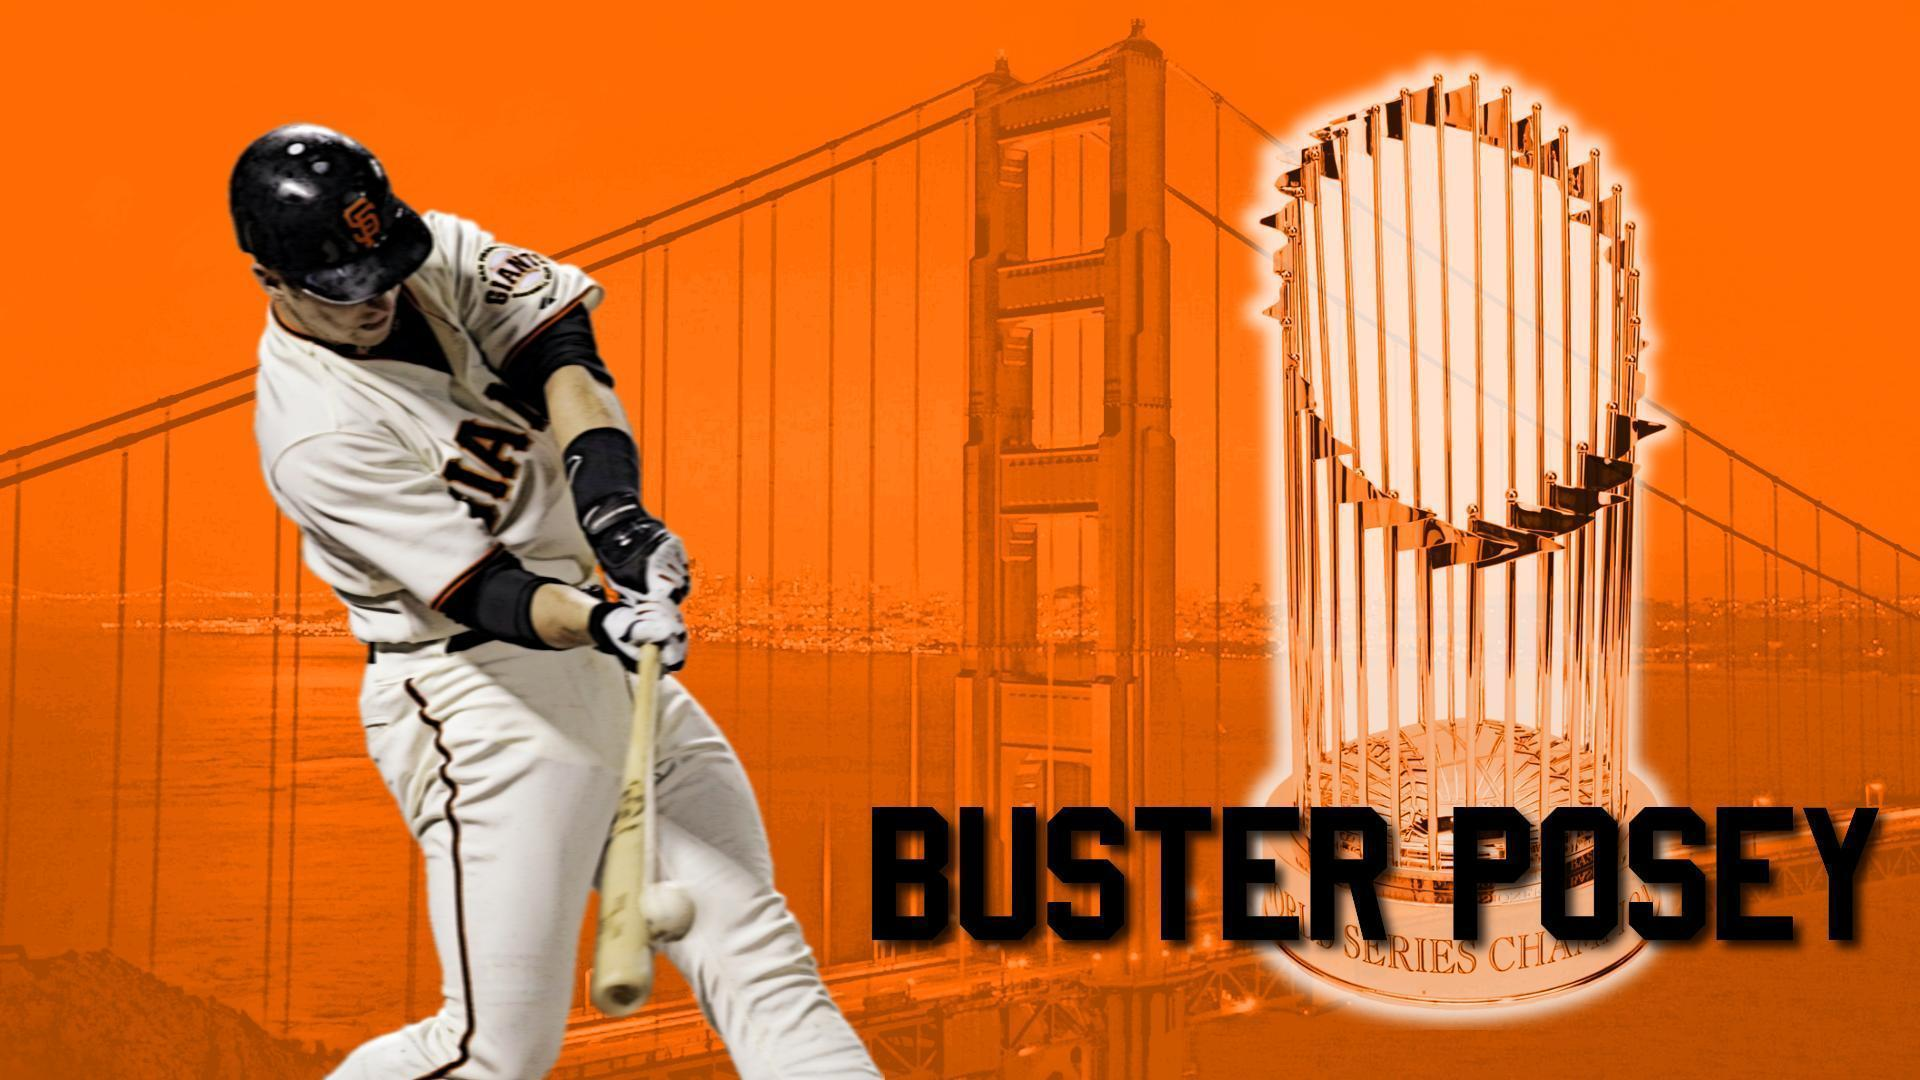 Free SF Giants HD Wallpapers